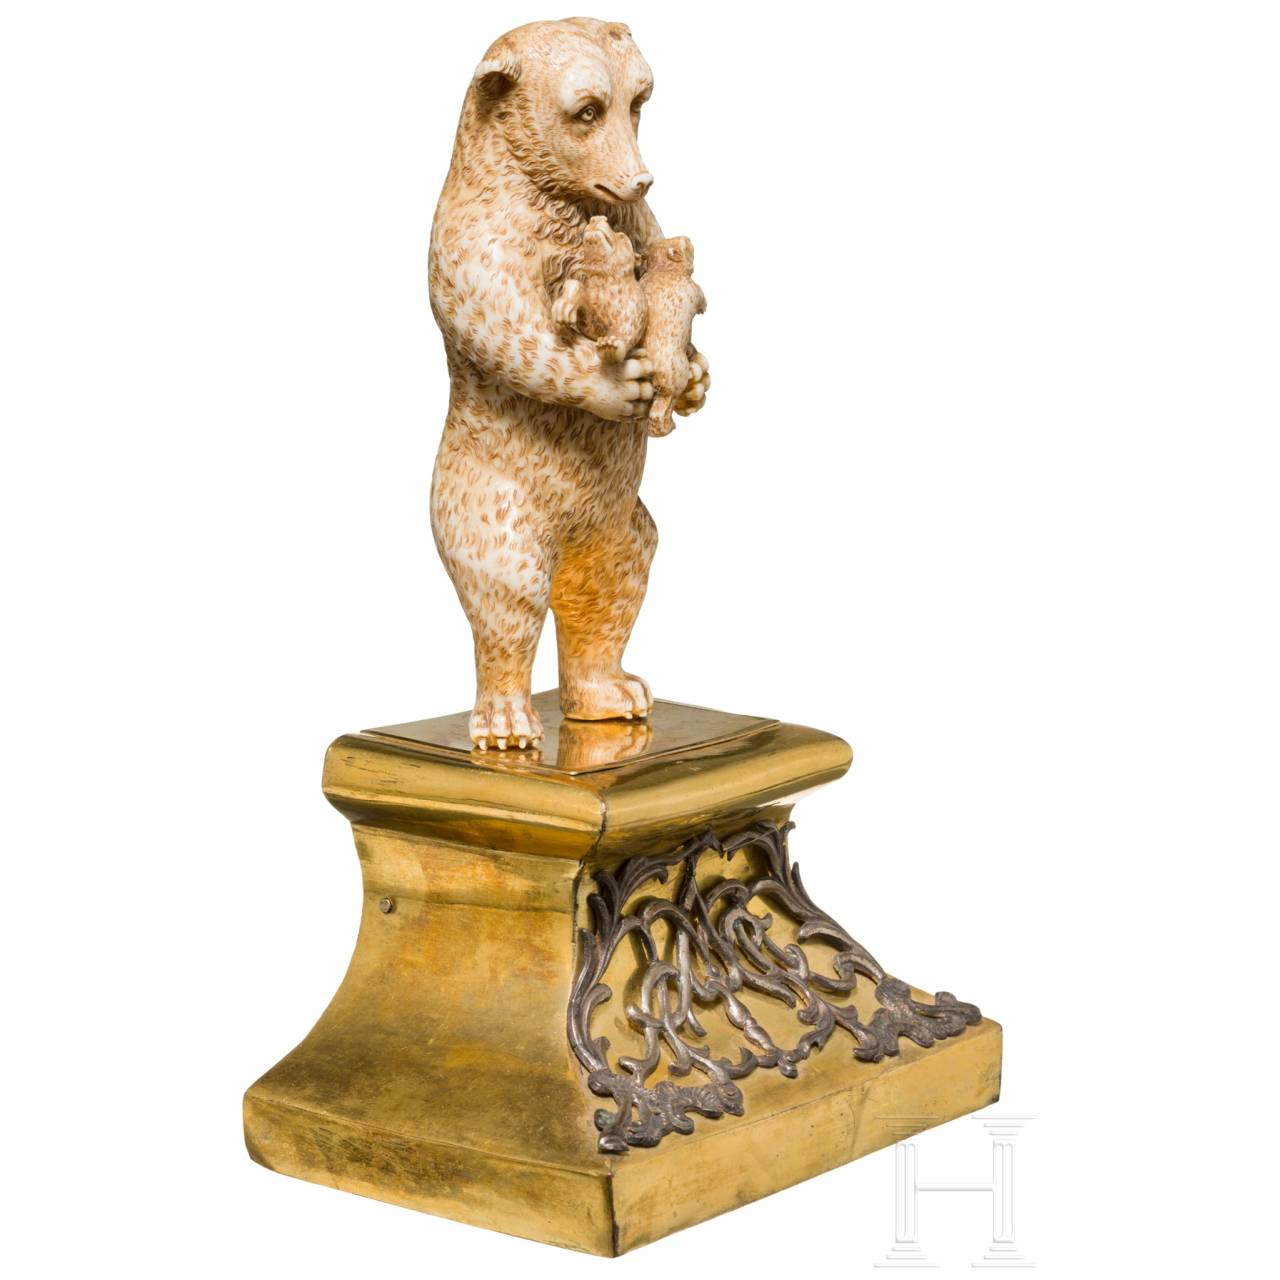 A probably Russian sculpture of a bear with two cubs, 18th/19th century